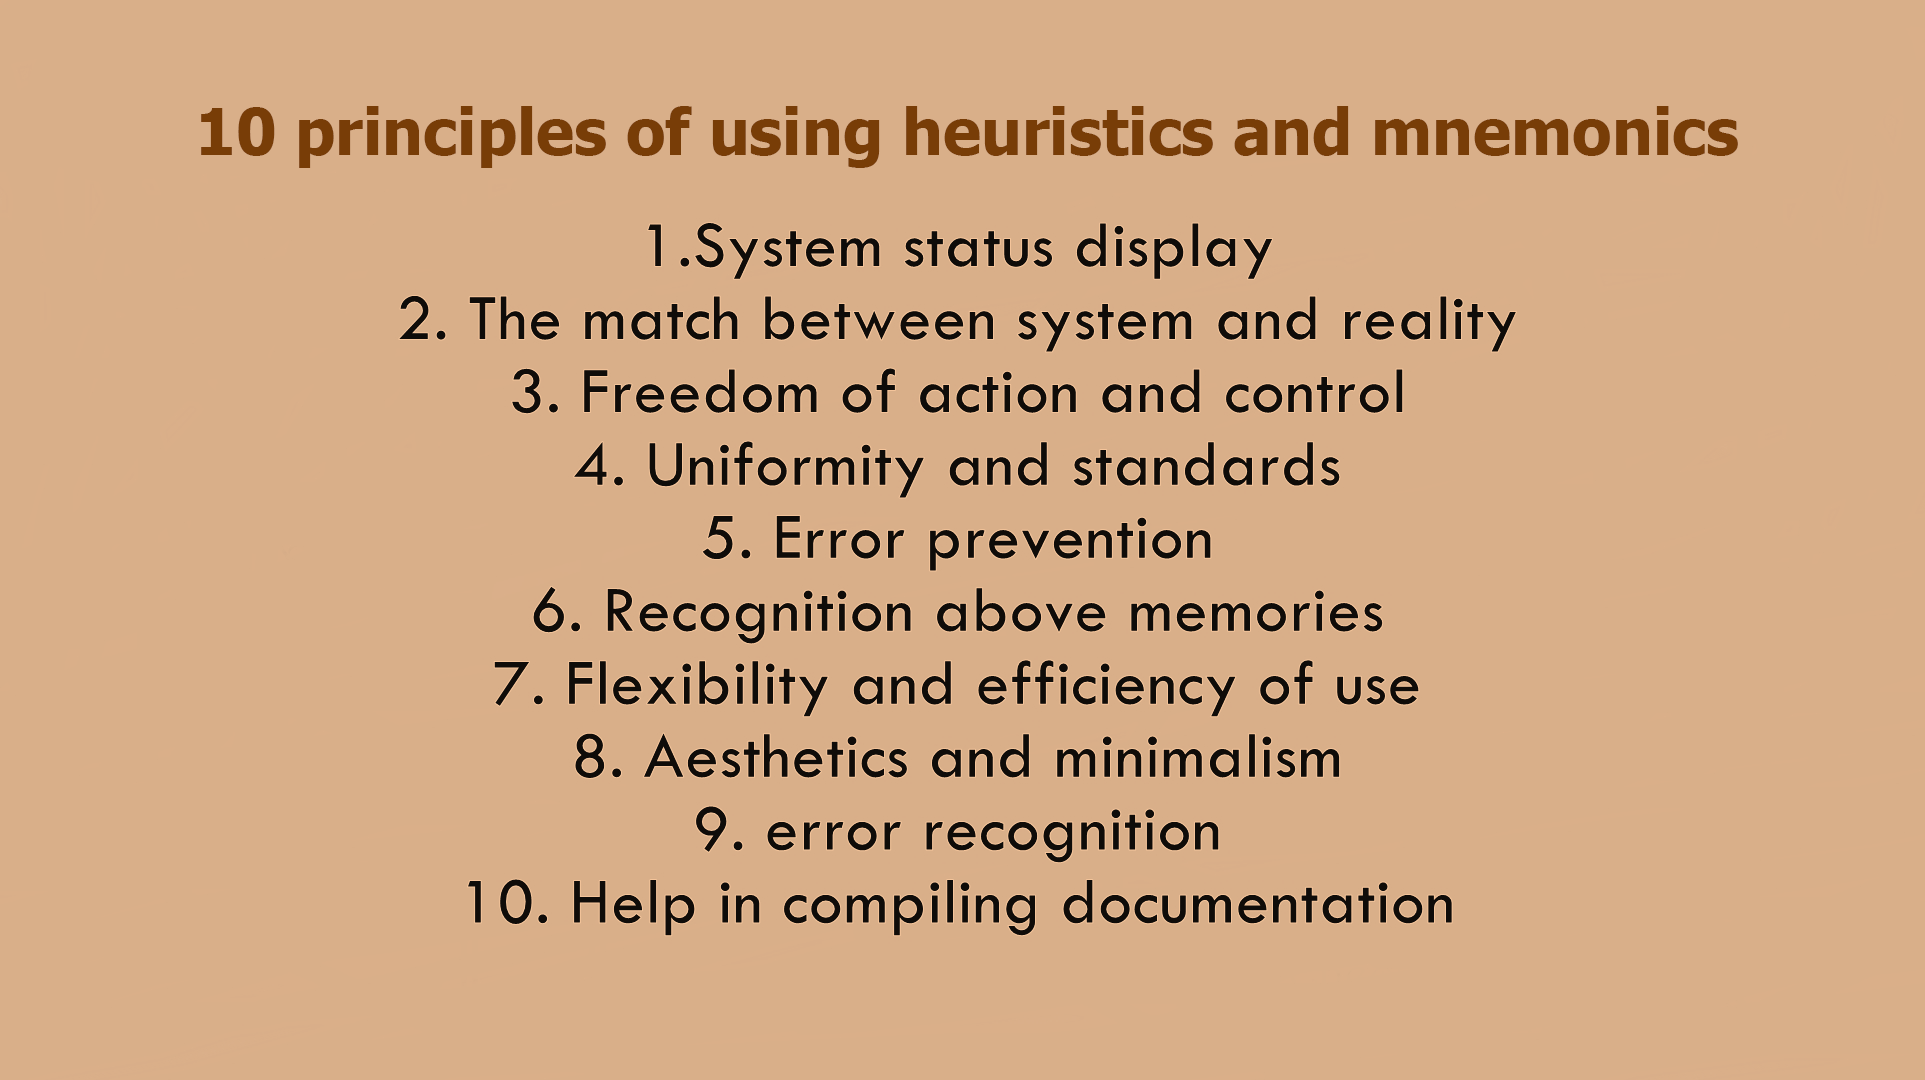 10 Principles of Using Heuristics and Mnemonics